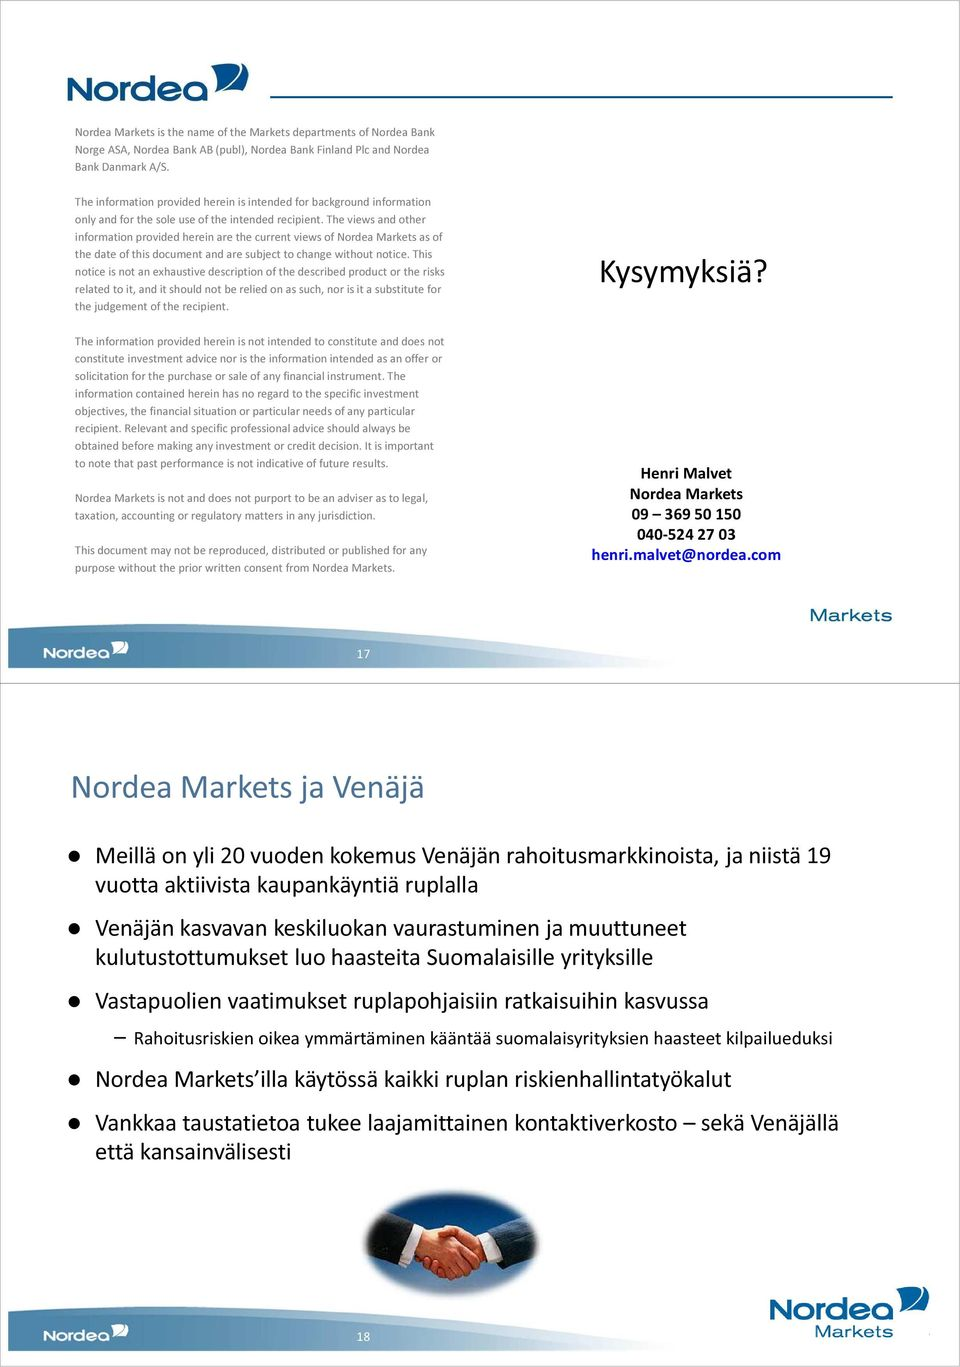 The views and other information provided herein are the current views of Nordea Markets as of the date of this document and are subject to change without notice.